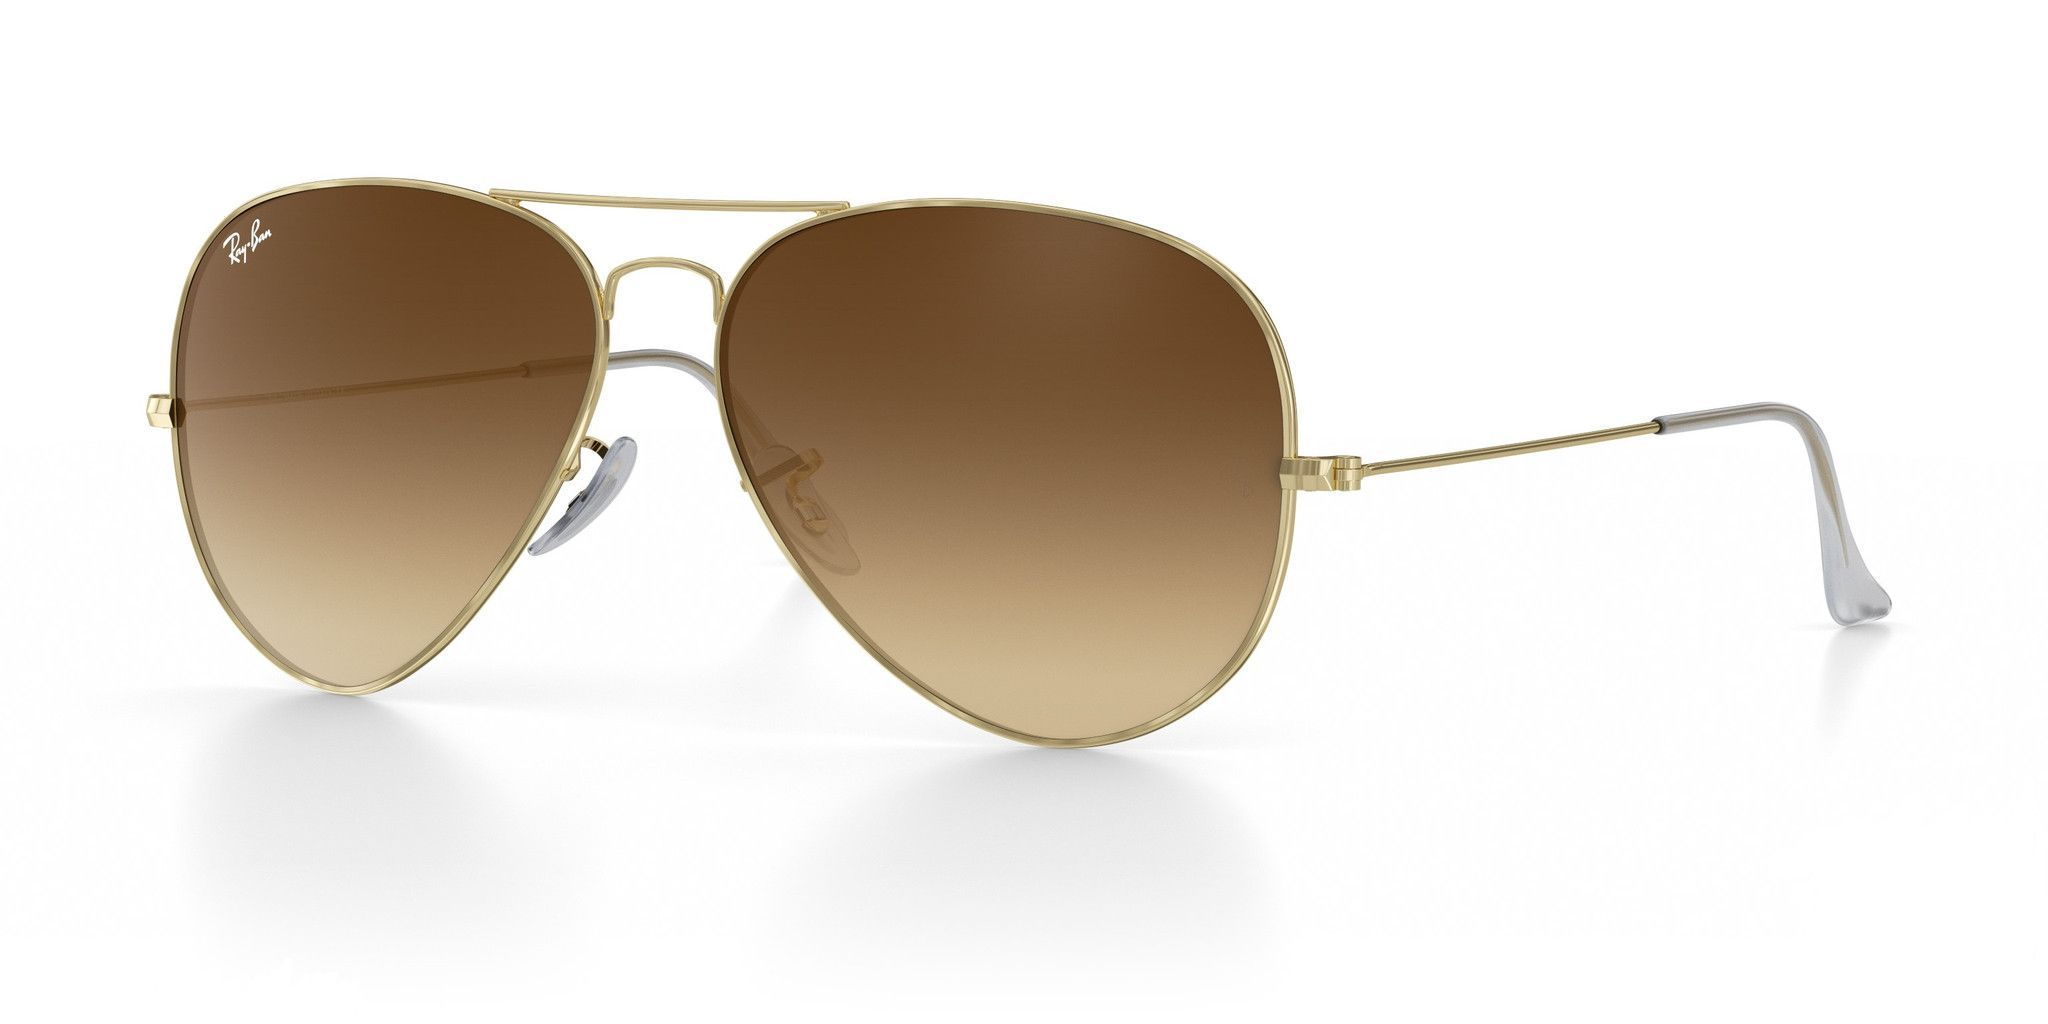 f5c6fd8013a Ray-Ban Aviator Brown Gradient 58MM - Sale! Up to 75% OFF! Shop at ...